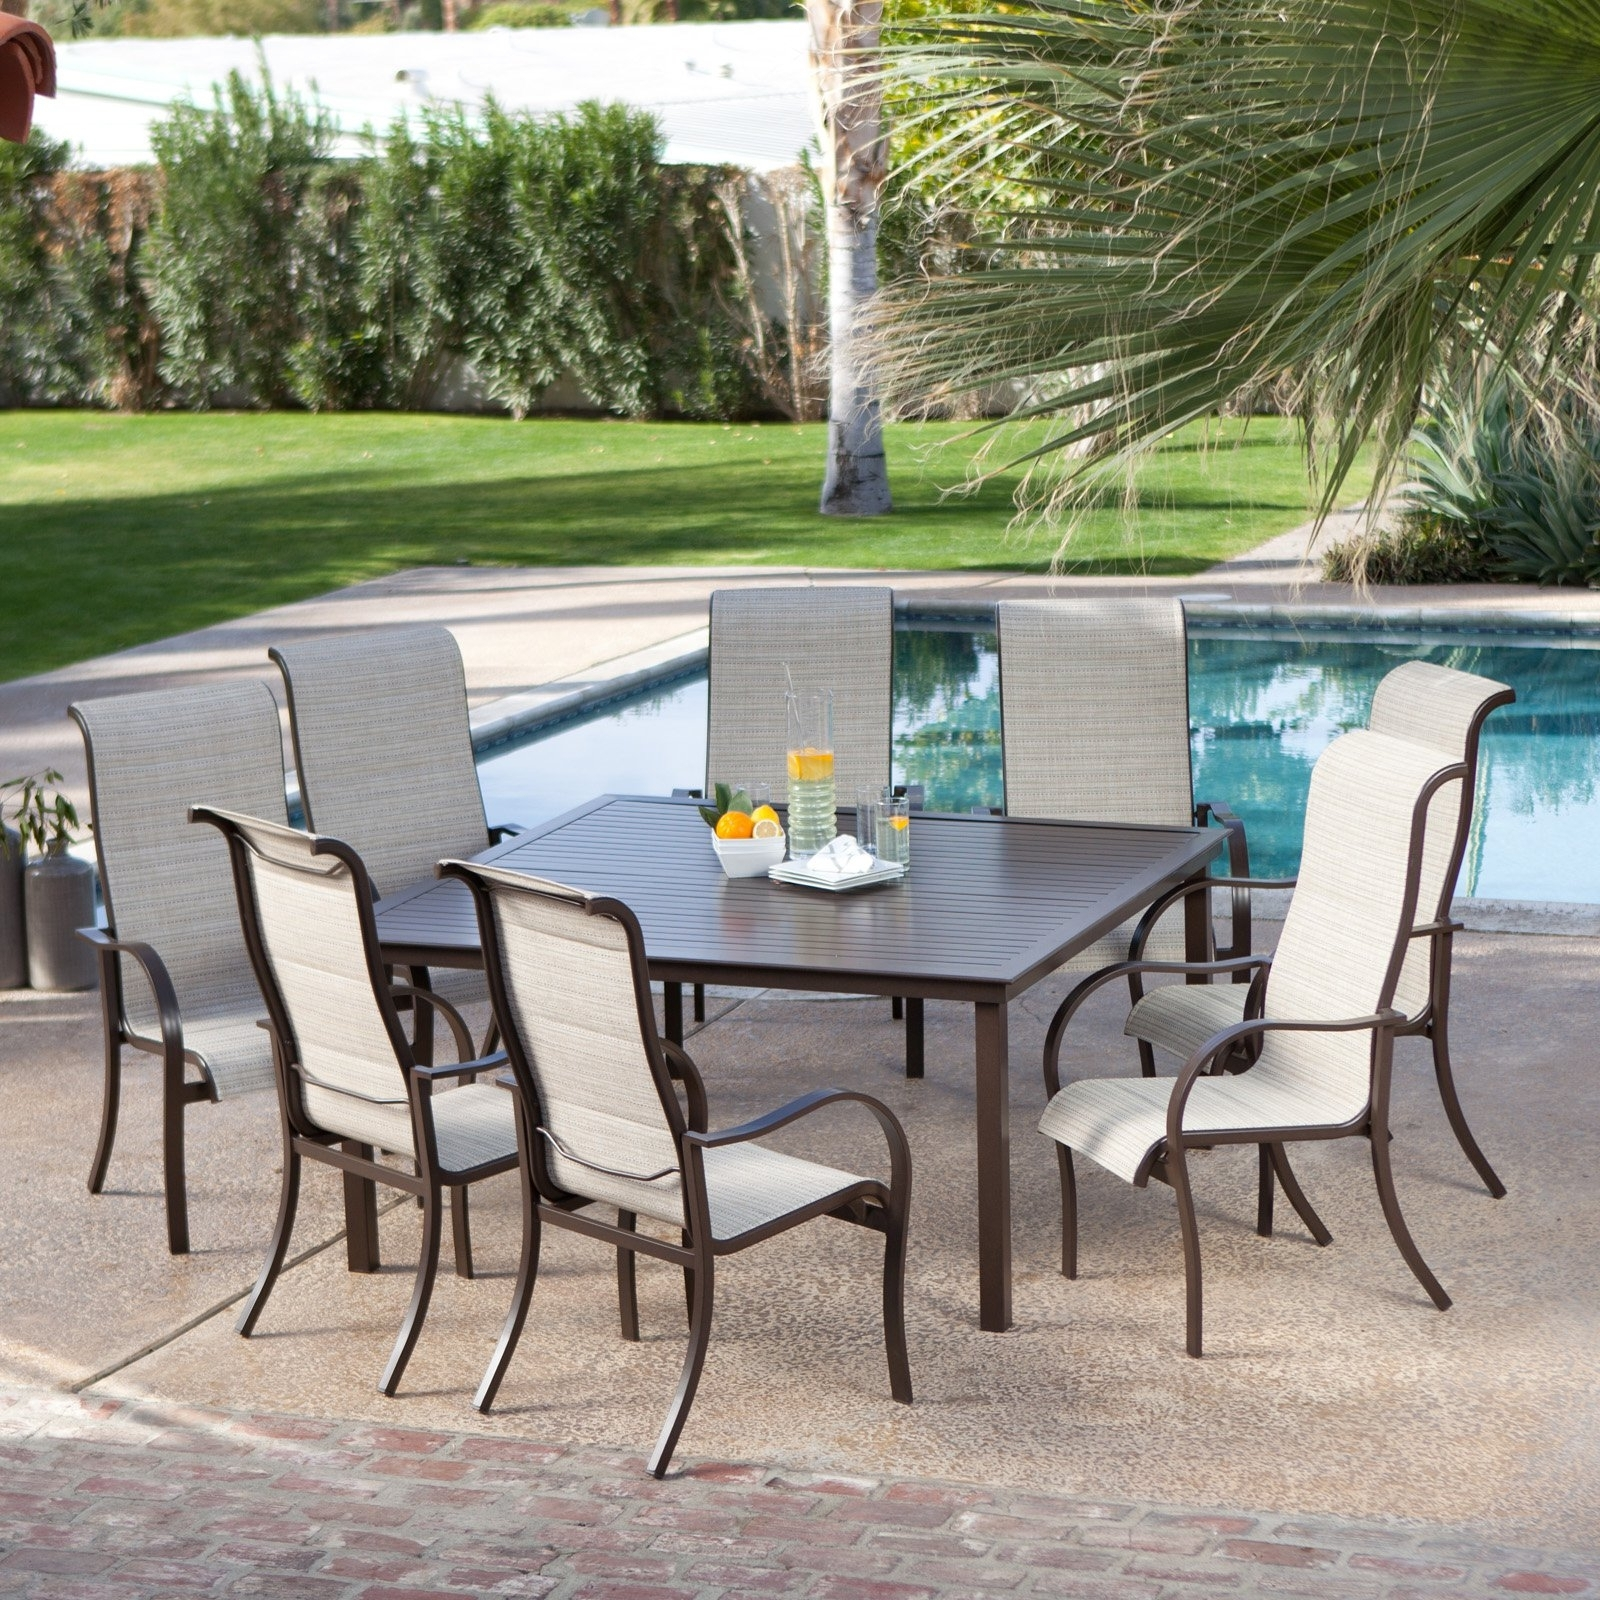 Square 8 Seat Patio Table • Patio Ideas In 2017 8 Seat Outdoor Dining Tables (View 3 of 25)